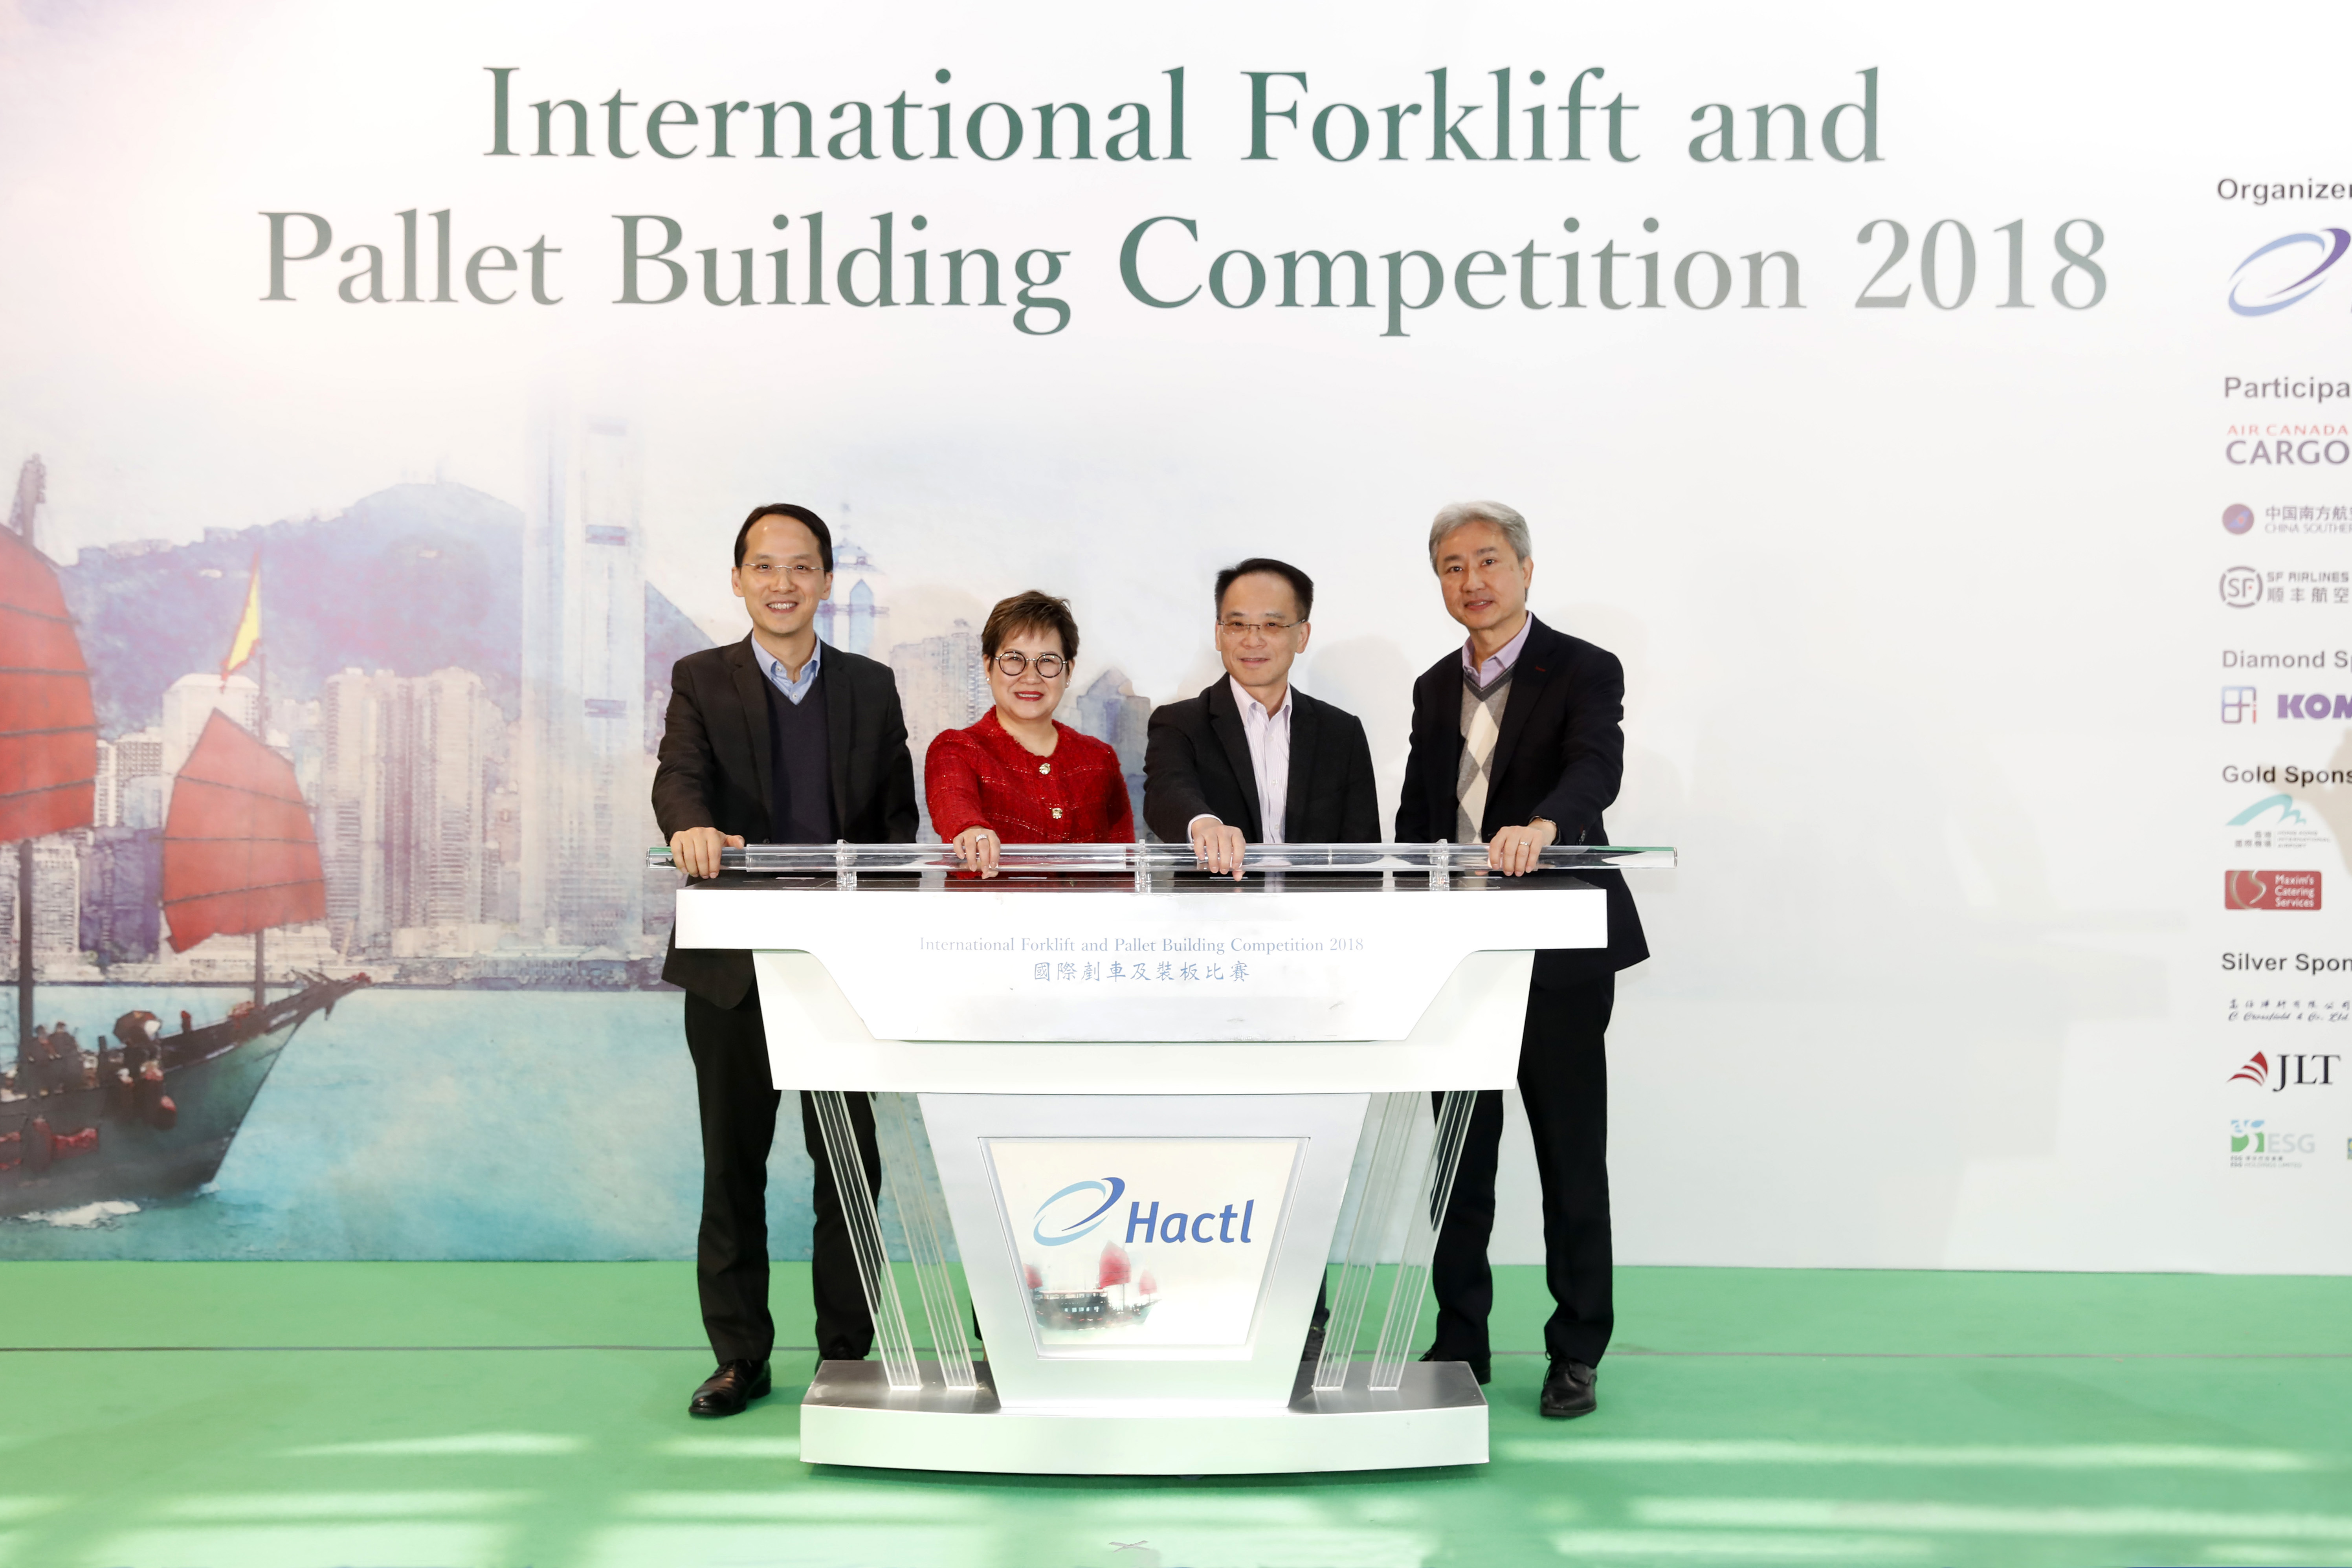 Hactl International Forklift and Pallet Building Competition 2018